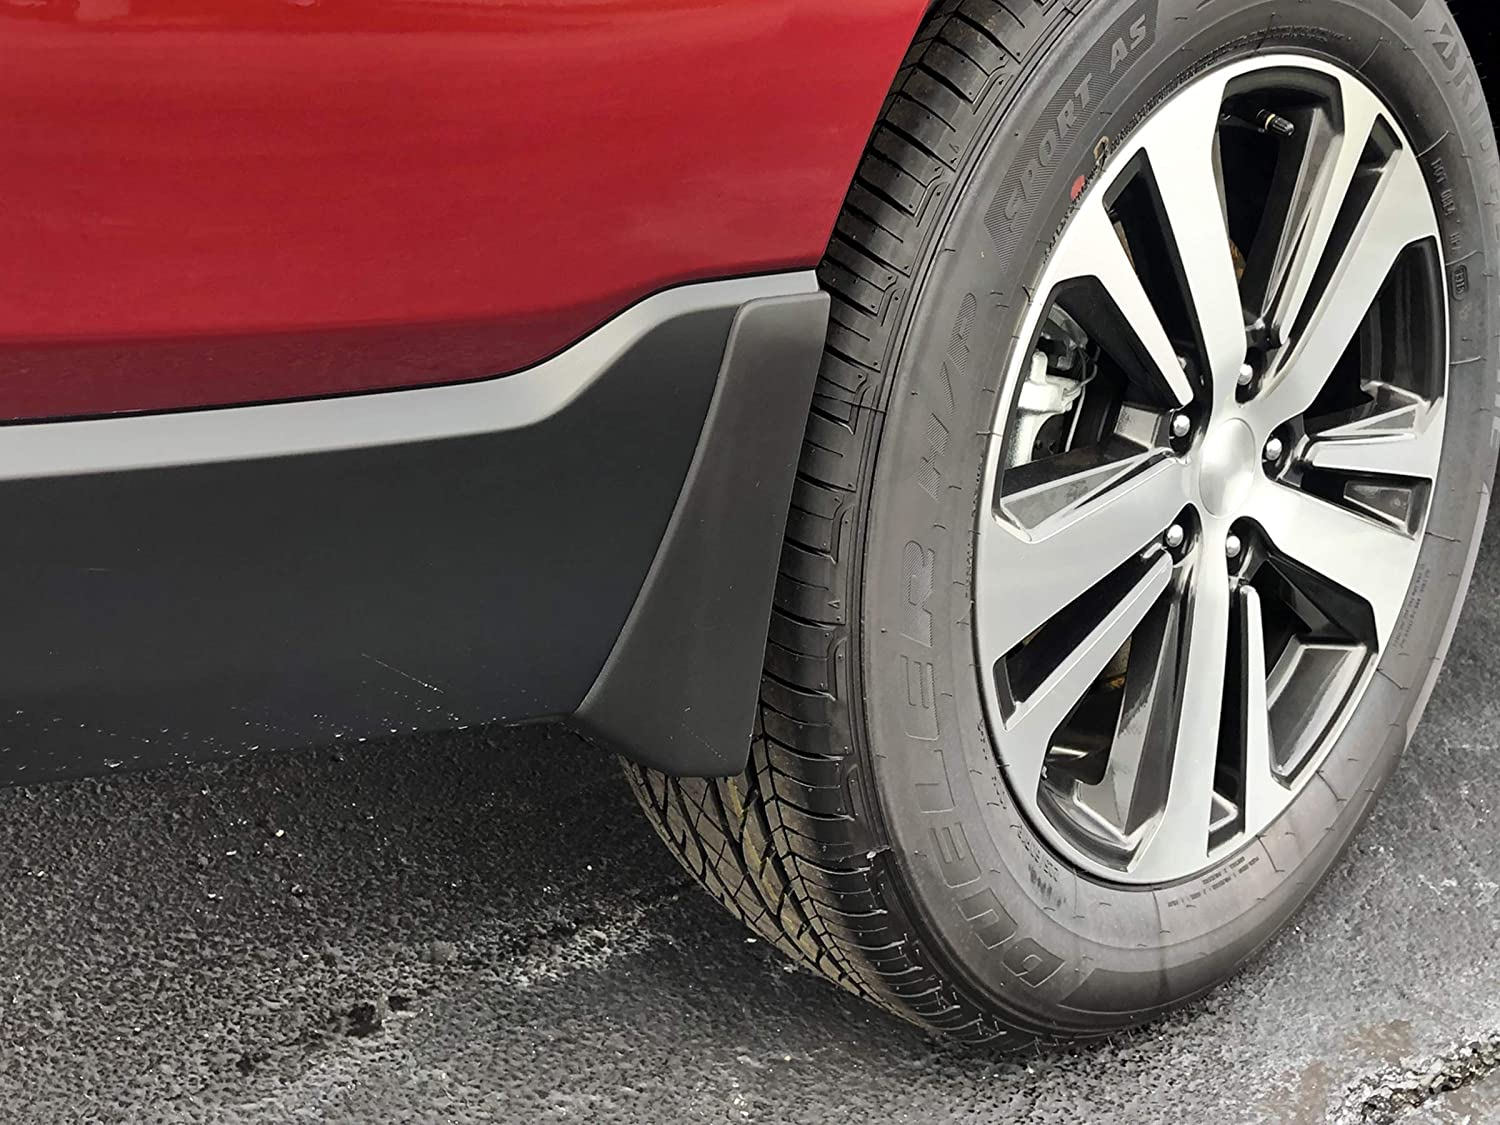 Red Hound Auto Compatible with Subaru Outback 2015-2019 Mud Flaps Splash Guards Front and Rear Molded 4pc Full Set